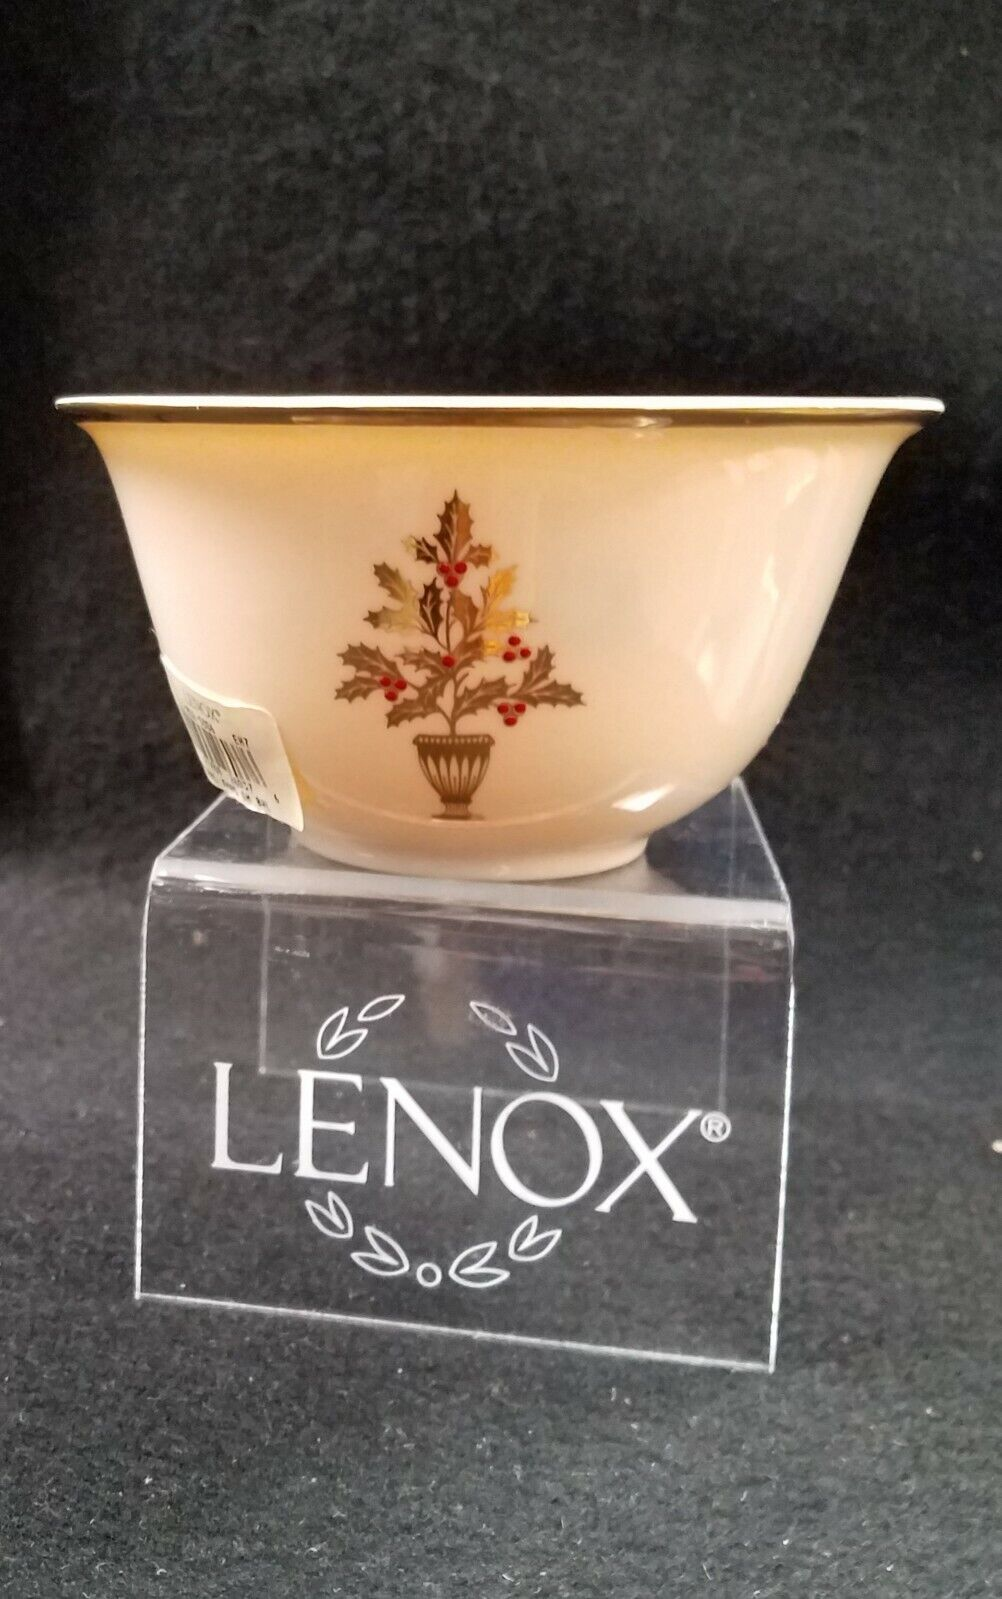 LENOX Eternal Christmas Bowl - $59.95